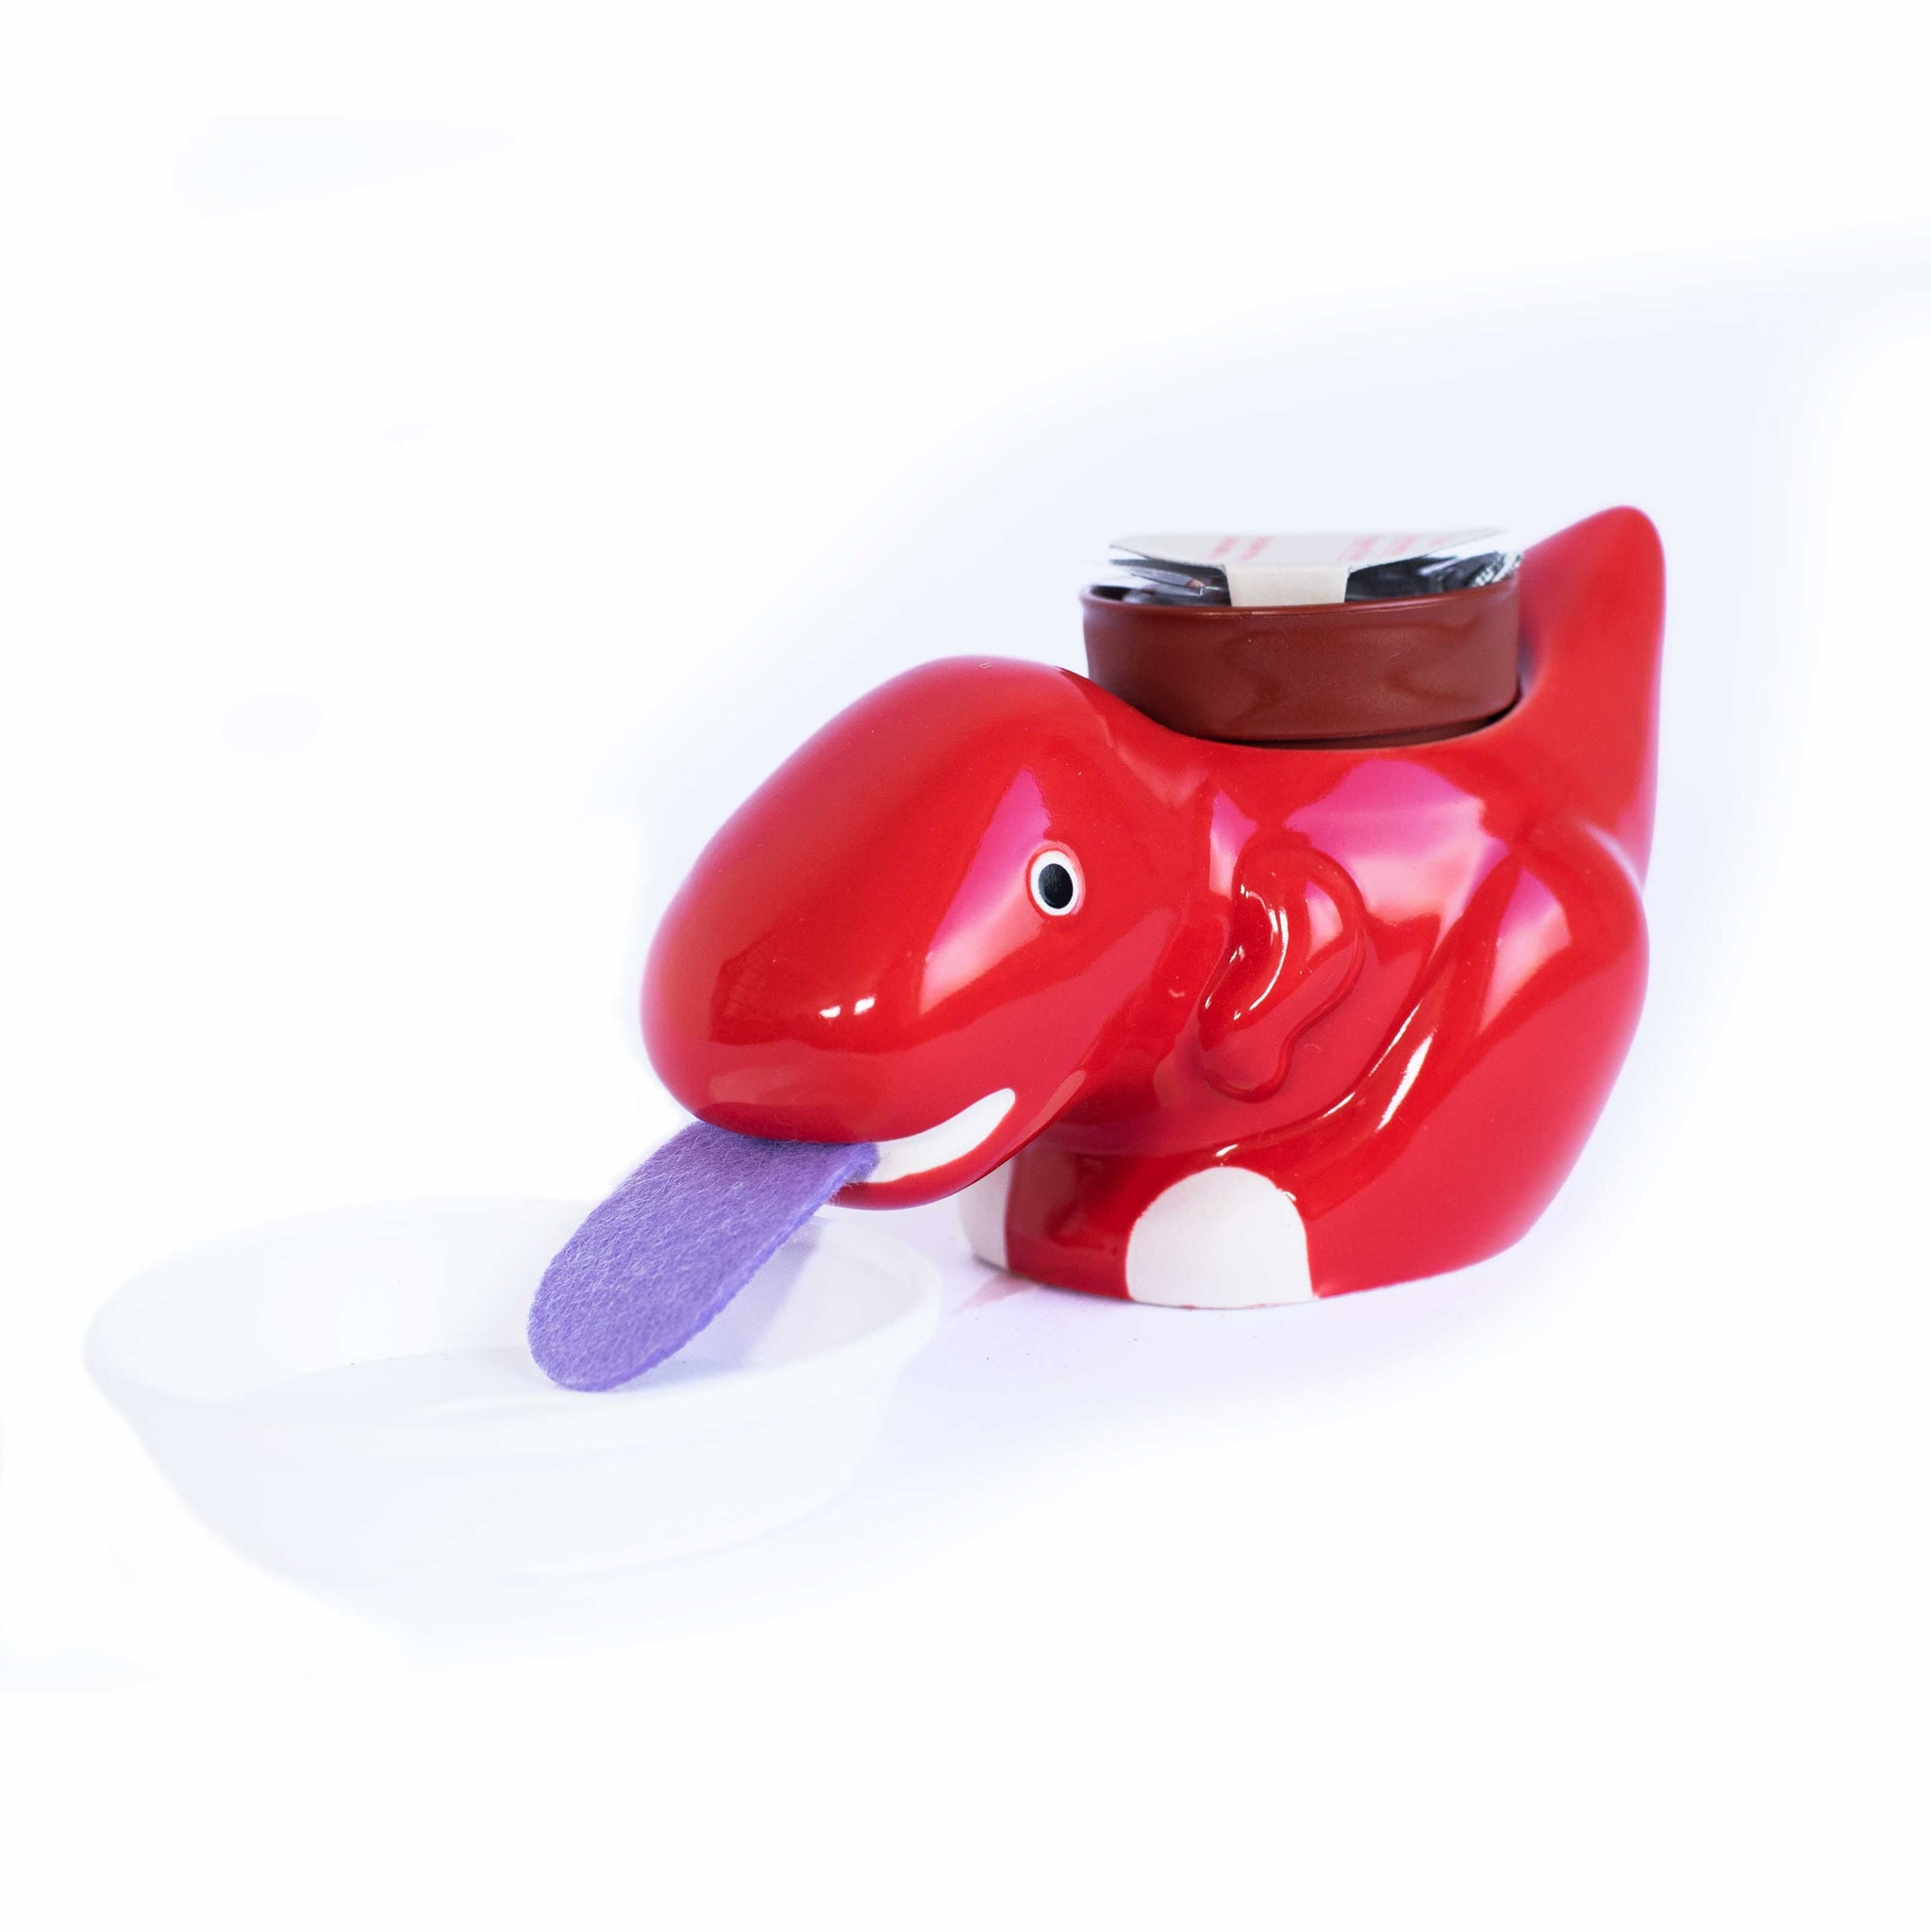 Red Zaurus Self Drinking Strawberry Planter